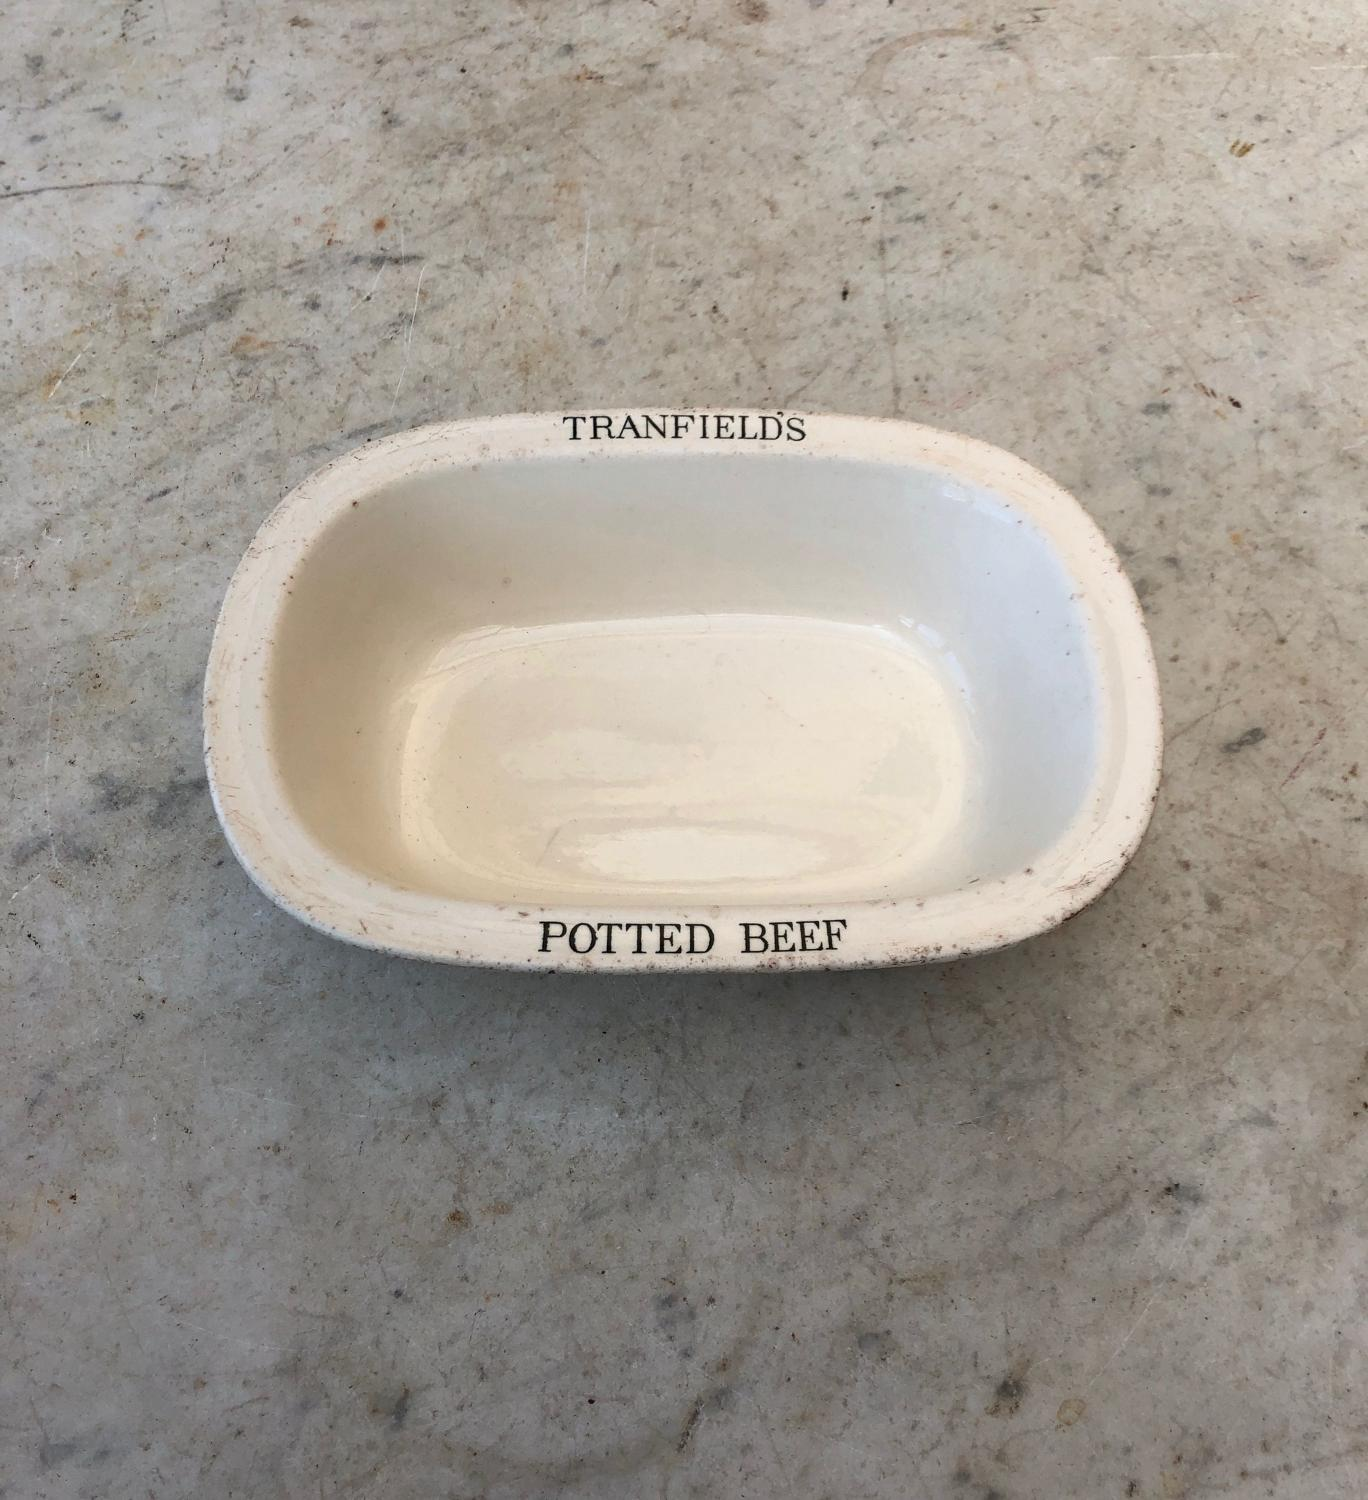 Edwardian Copeland Spode Butchers Dish - Tranfields Potted Beef